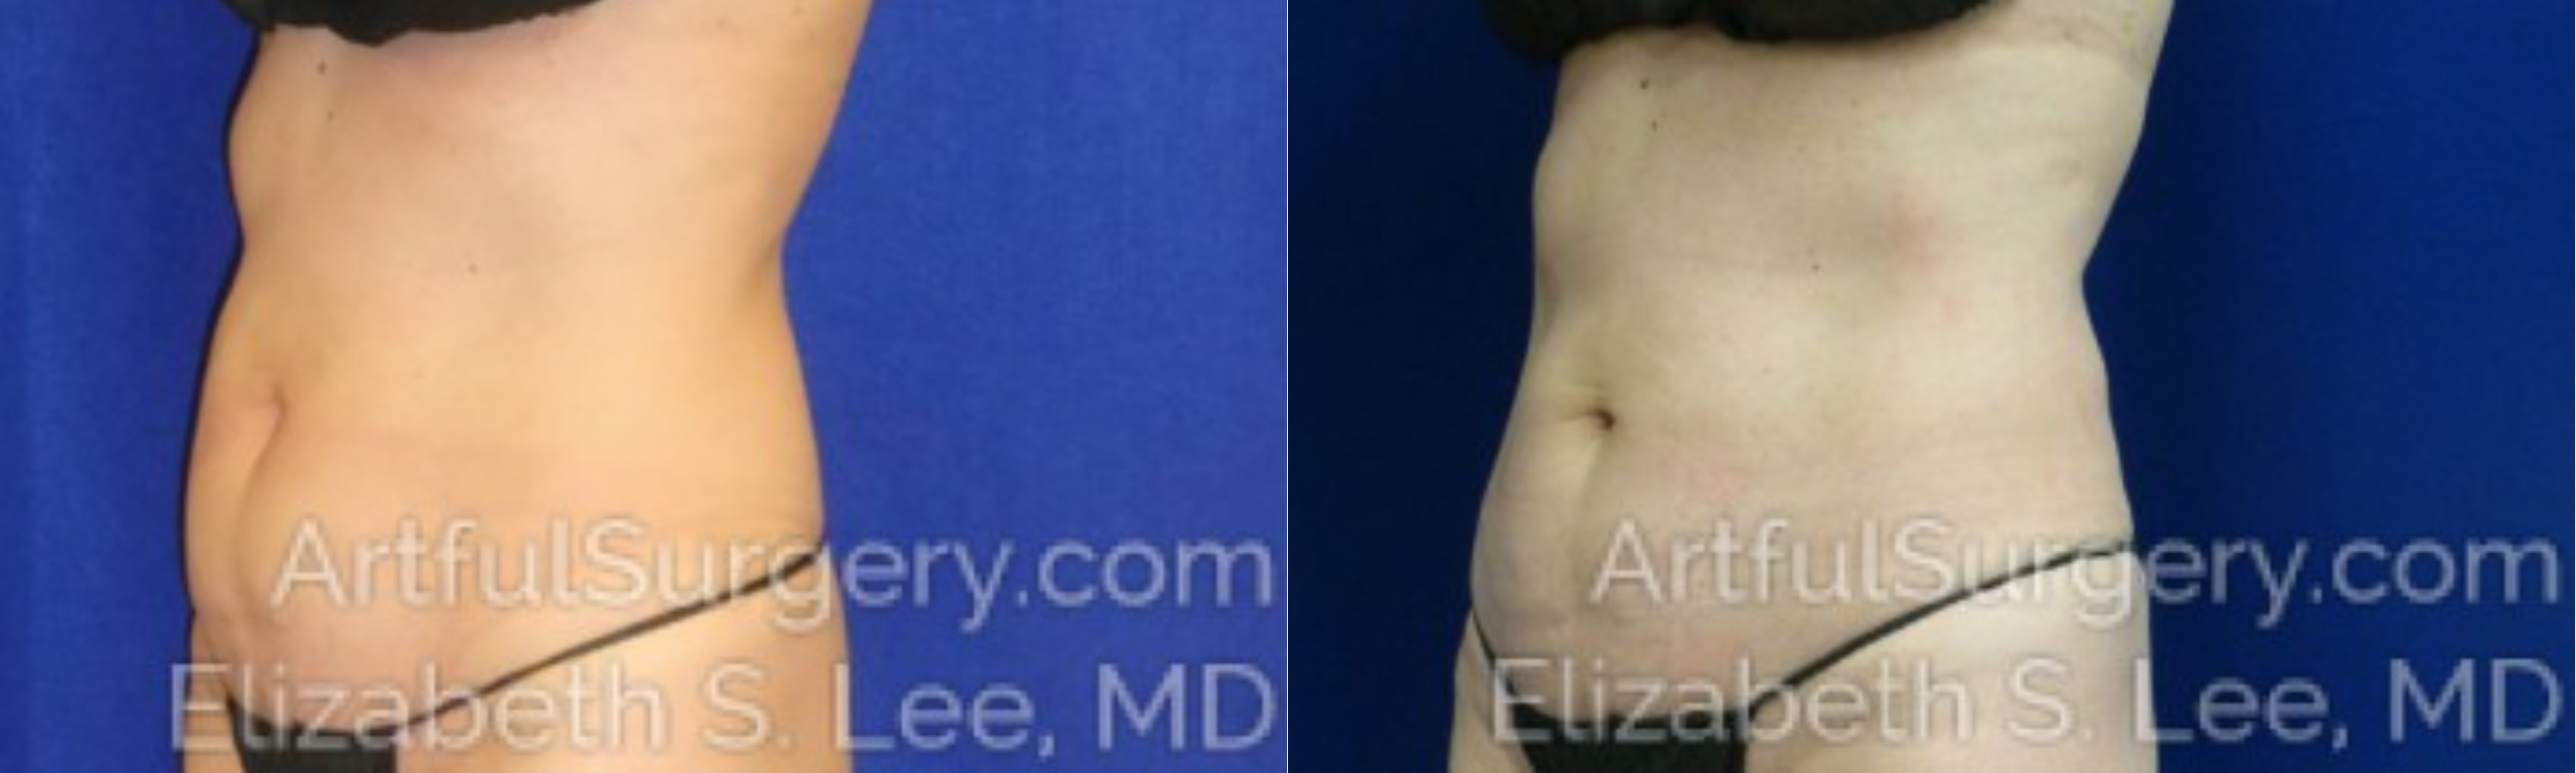 CoolSculpting Before & After Patient #9660